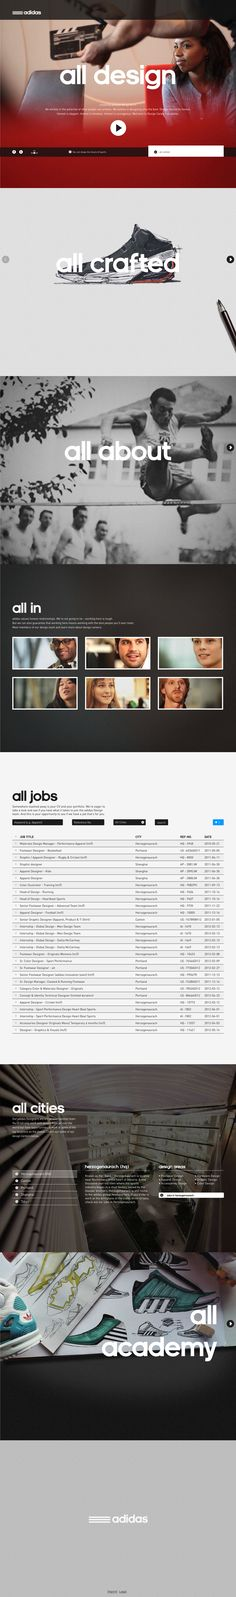 adidasdesignstudios - i really like this minimalist take.  The photos are incredible and the interaction is done right - yes easing does add to the UX